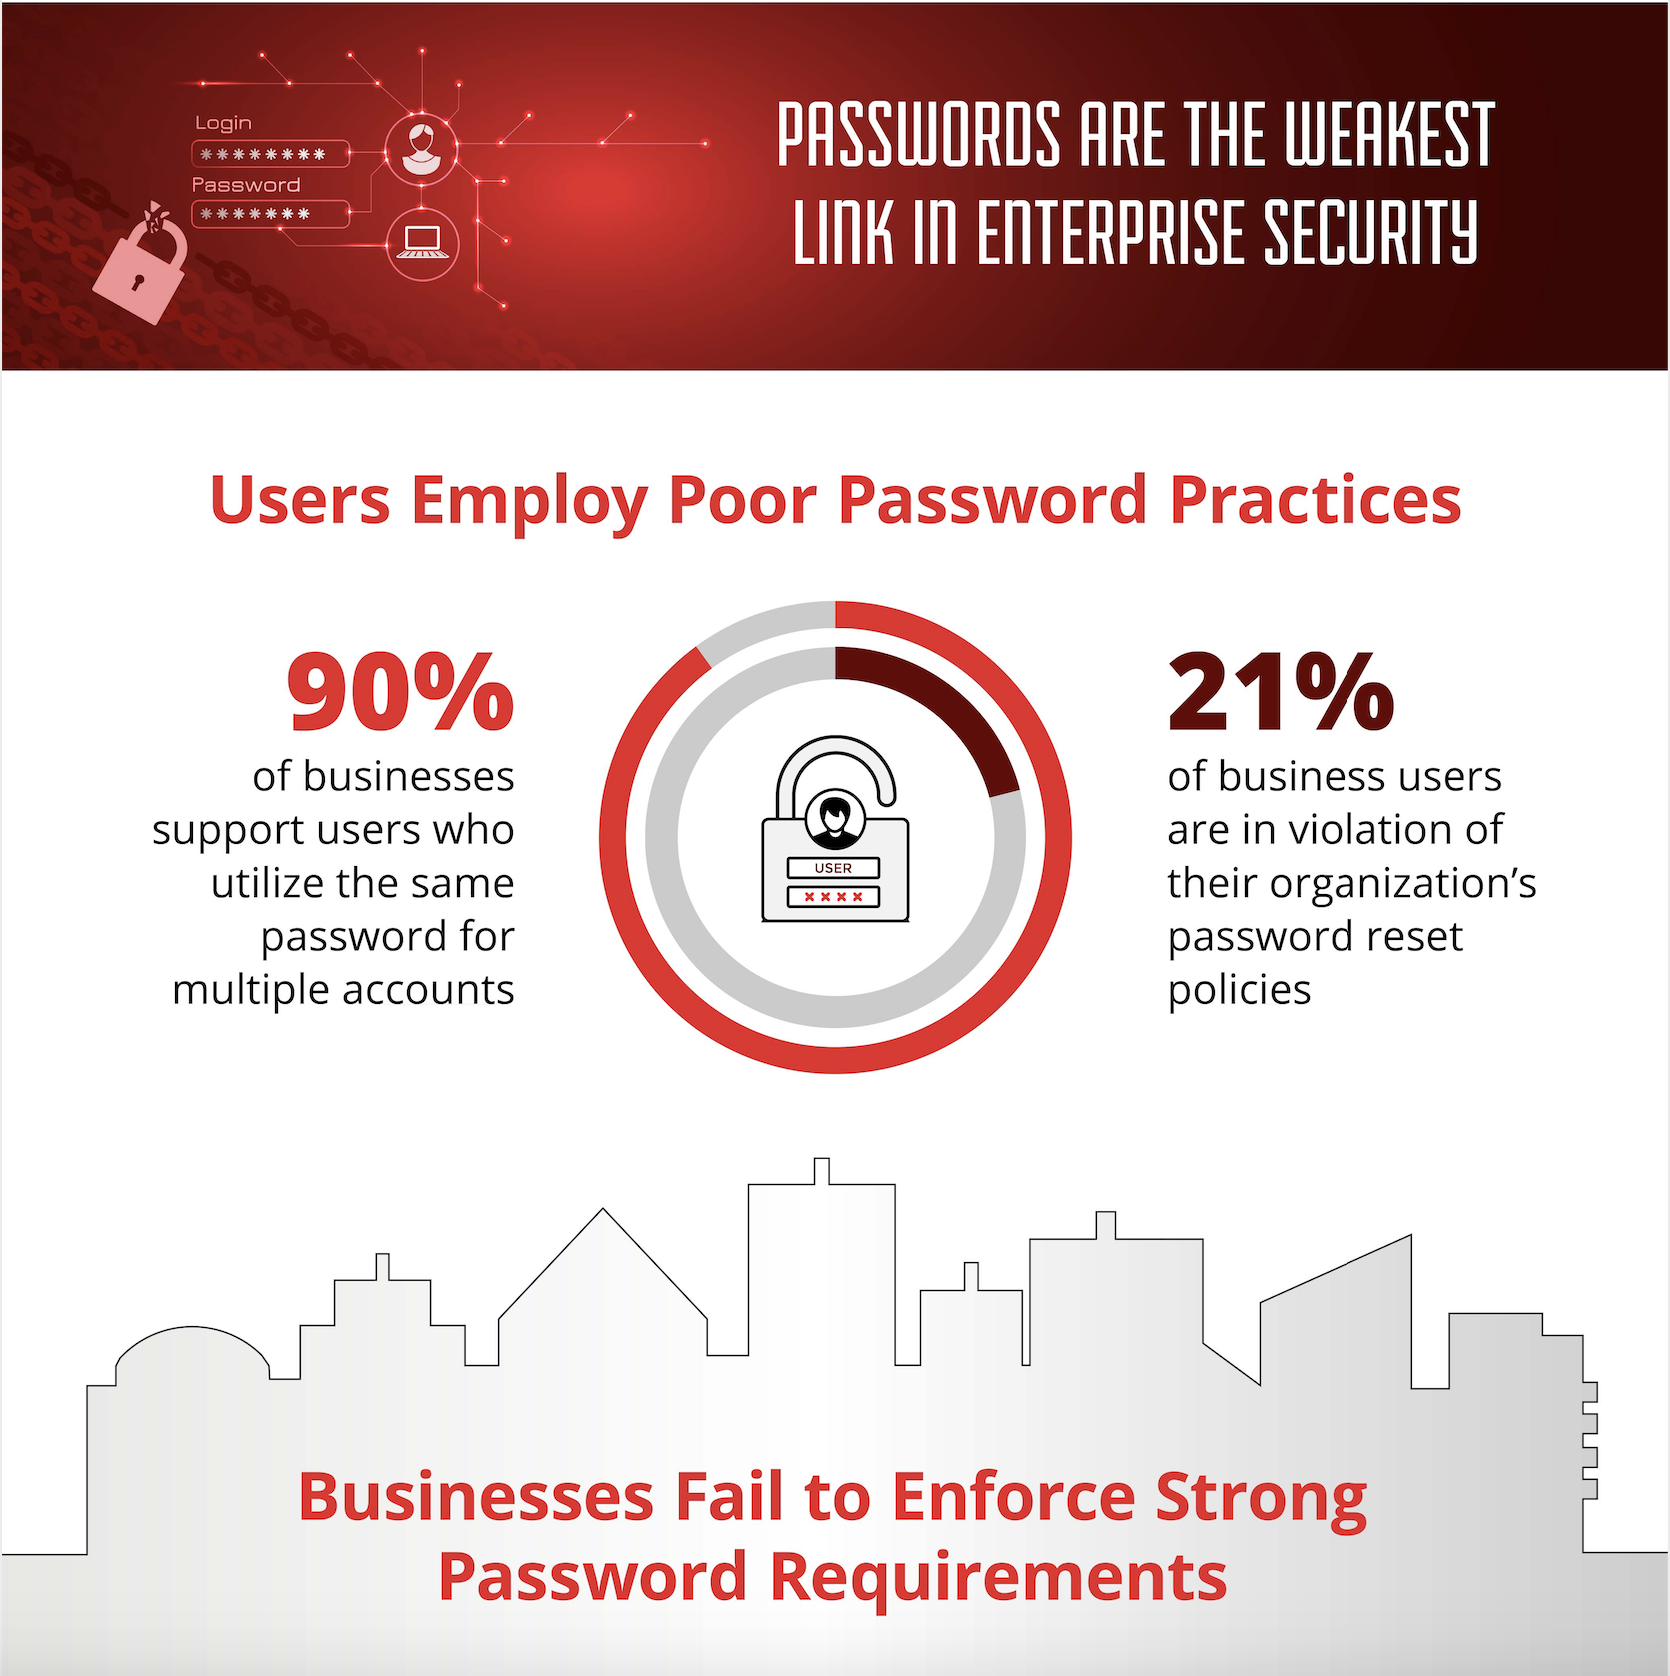 Passwords are the weakest link in enterprise security